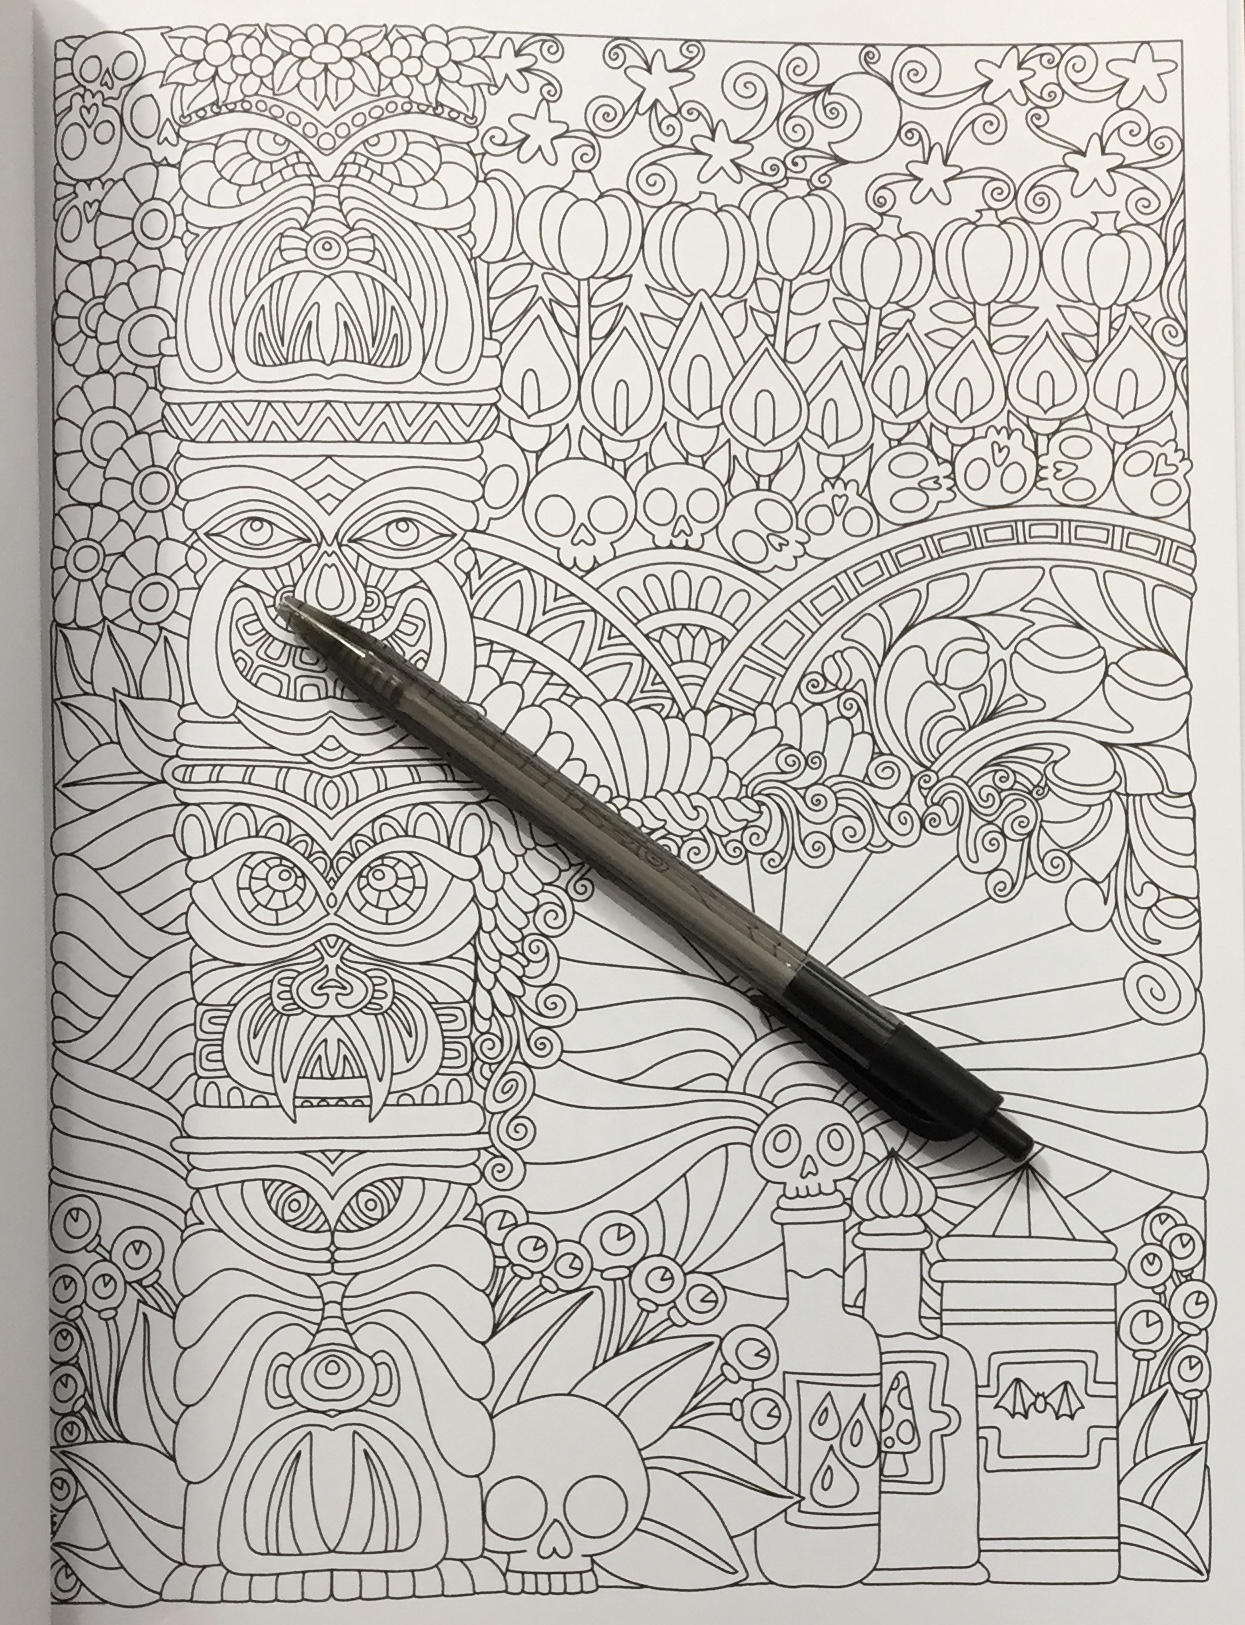 Dragonfly Mandala Colouring Page by Angela Porter   Etsy   1625x1245